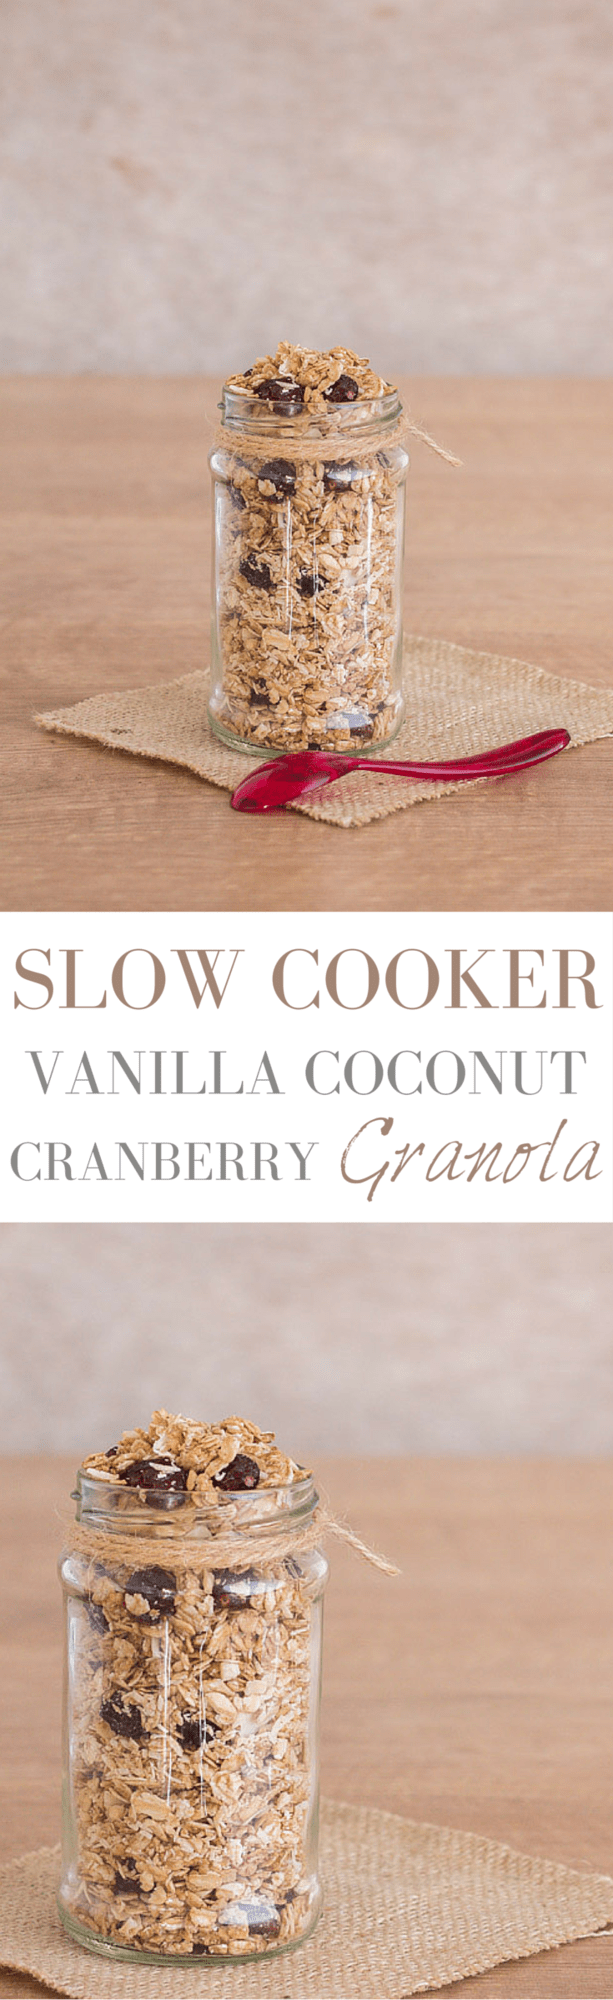 Slow Cooker Vanilla Coconut Cranberry Granola | Recipes From A Pantry